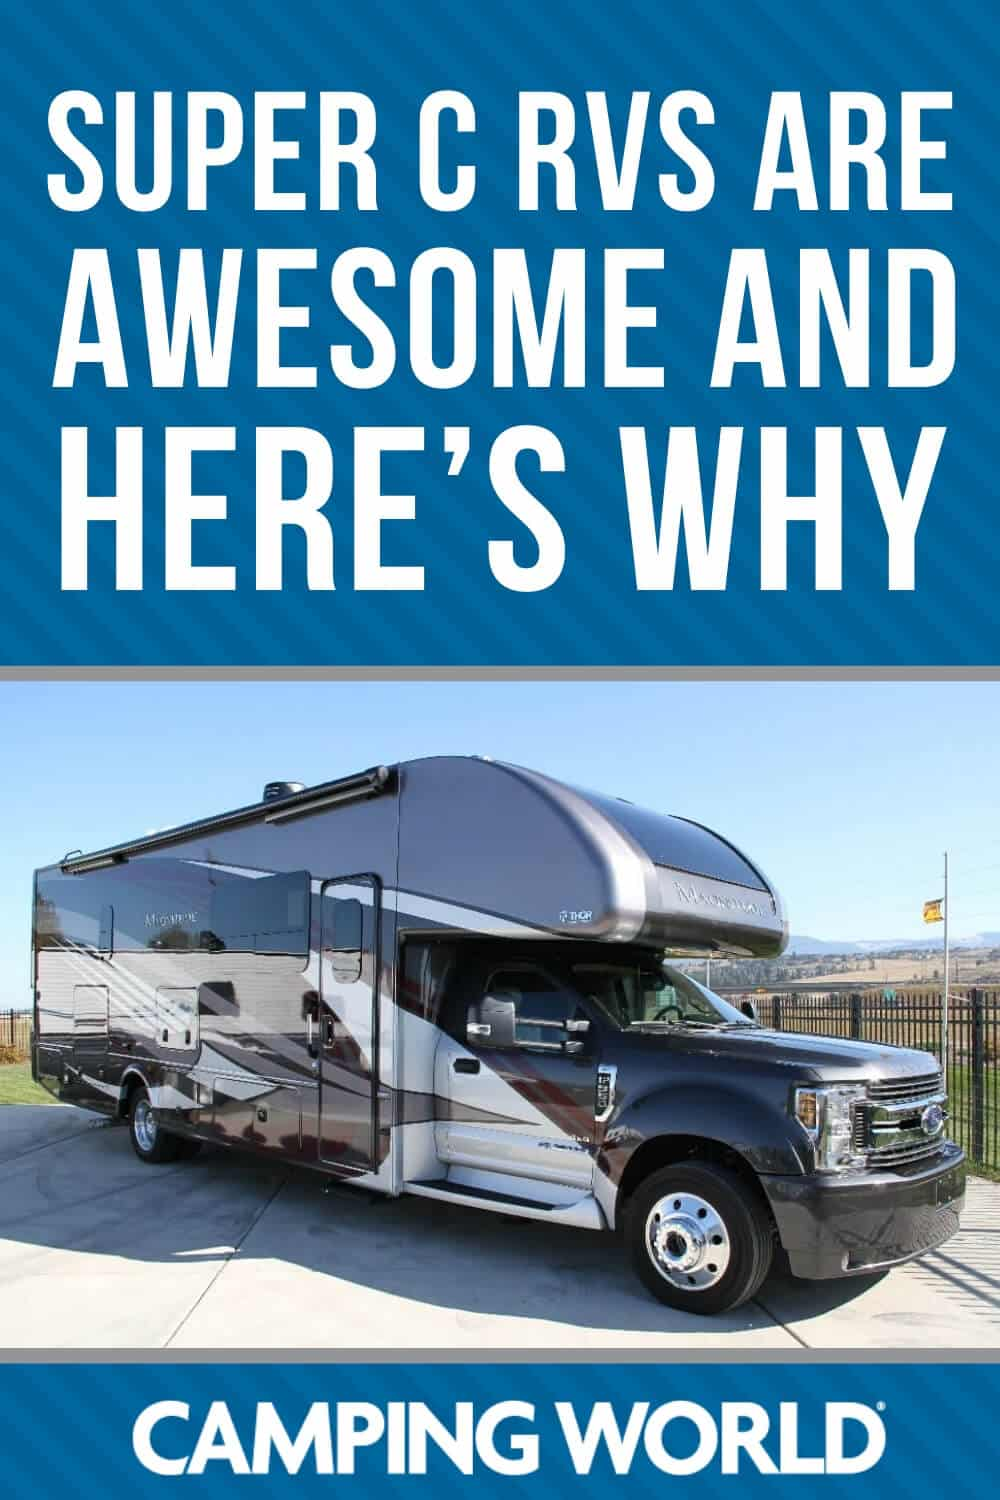 Super C RVs are awesome and here's why